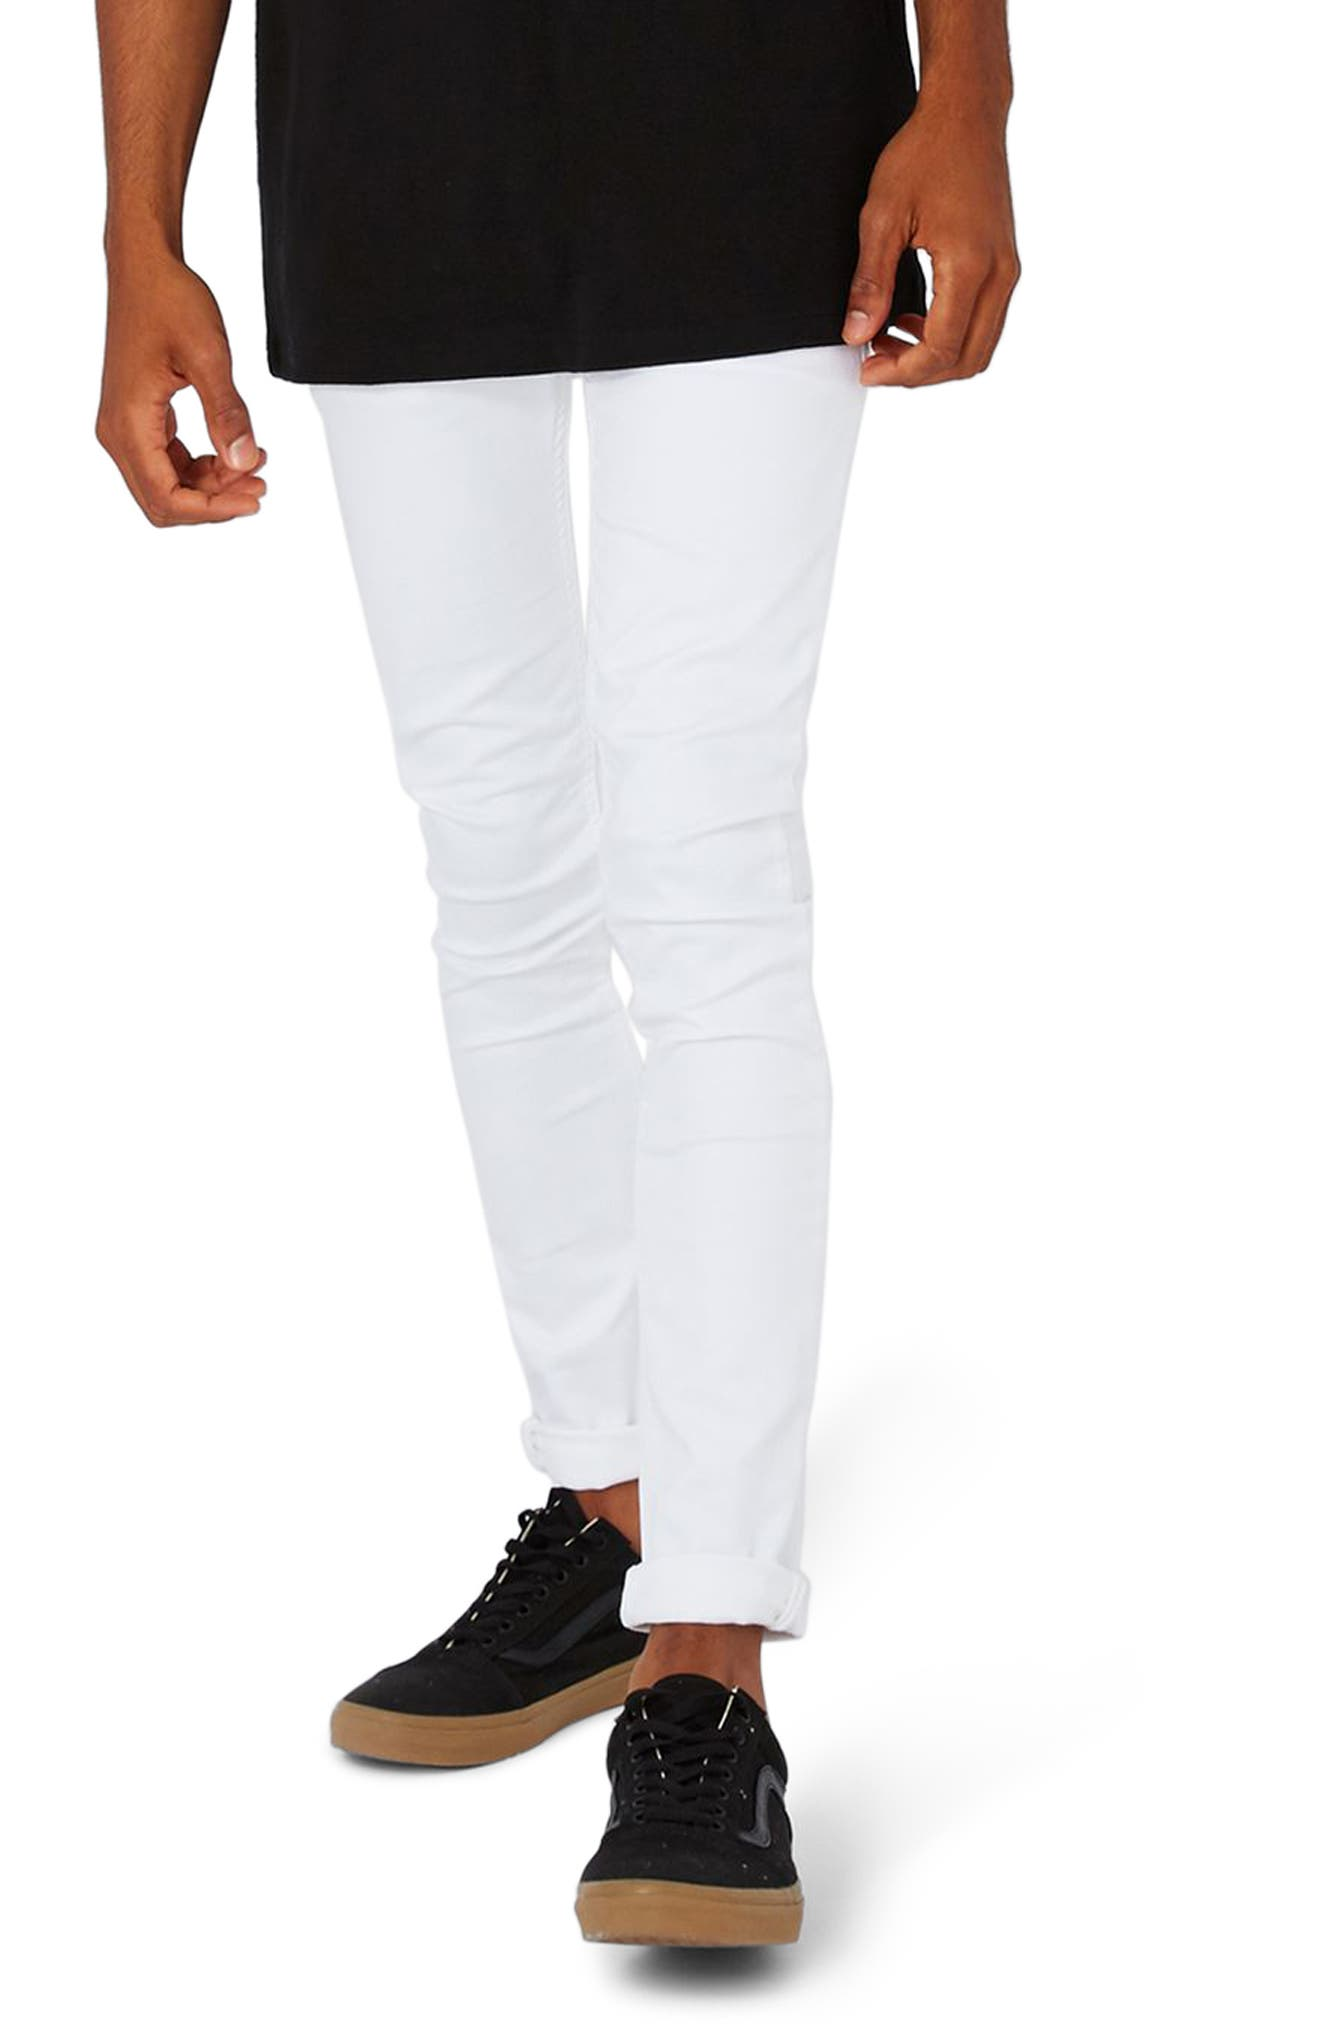 Topman White Spray-On Skinny Jeans